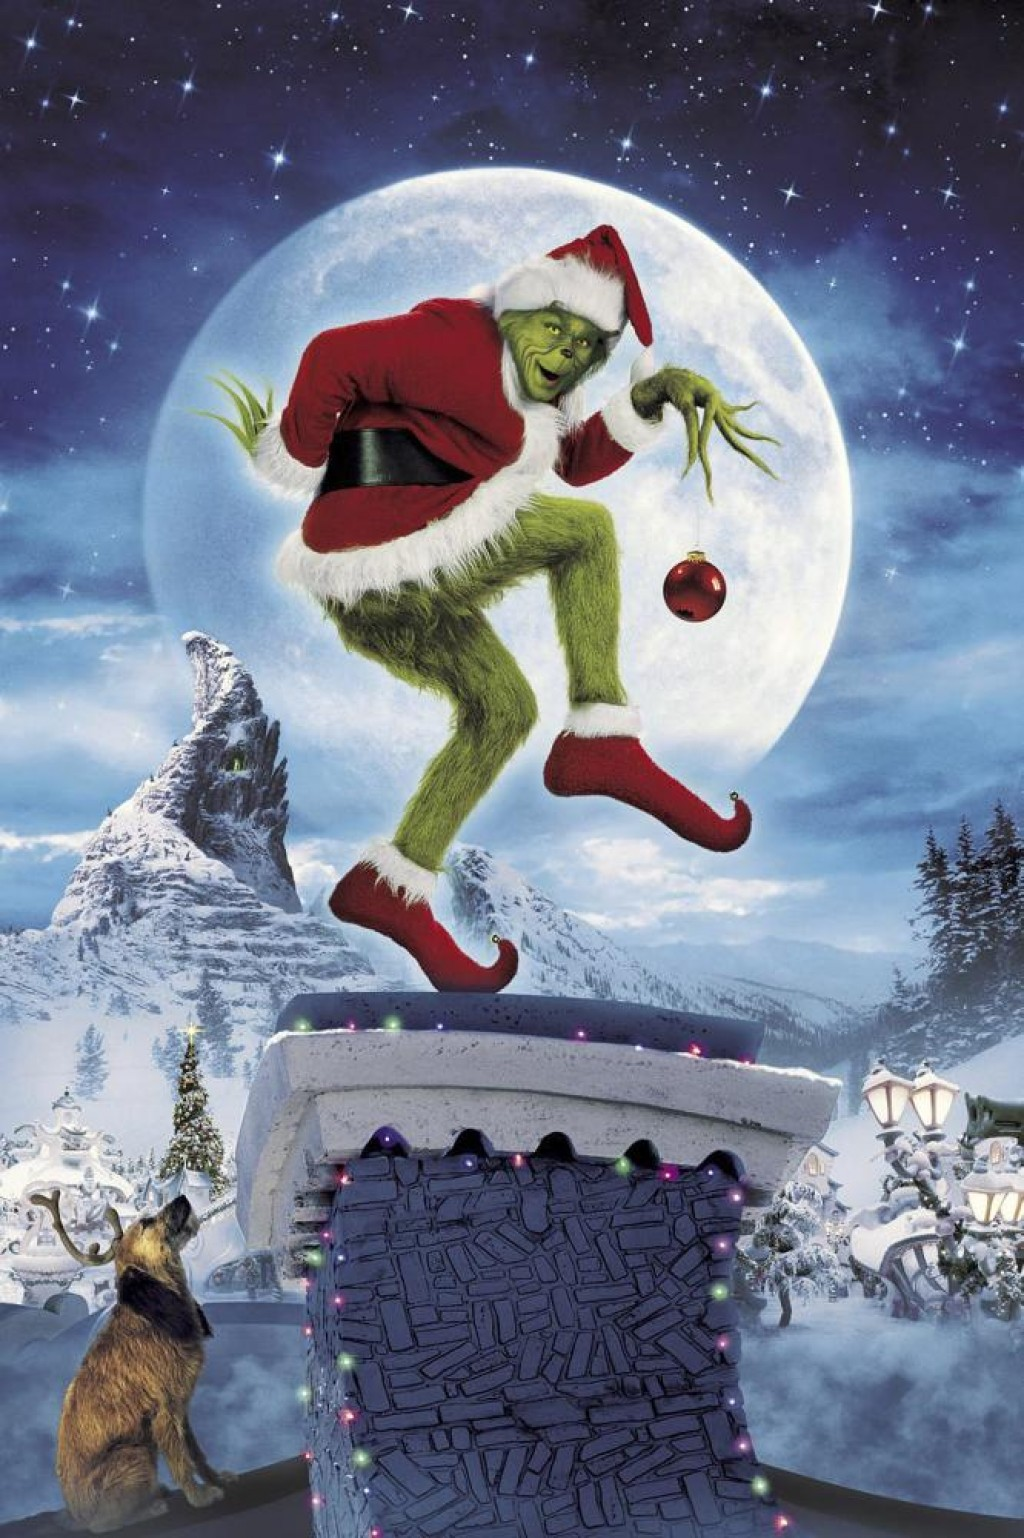 How The Grinch Stole Christmas Jim Carrey.Holiday Classic How The Grinch Stole Christmas